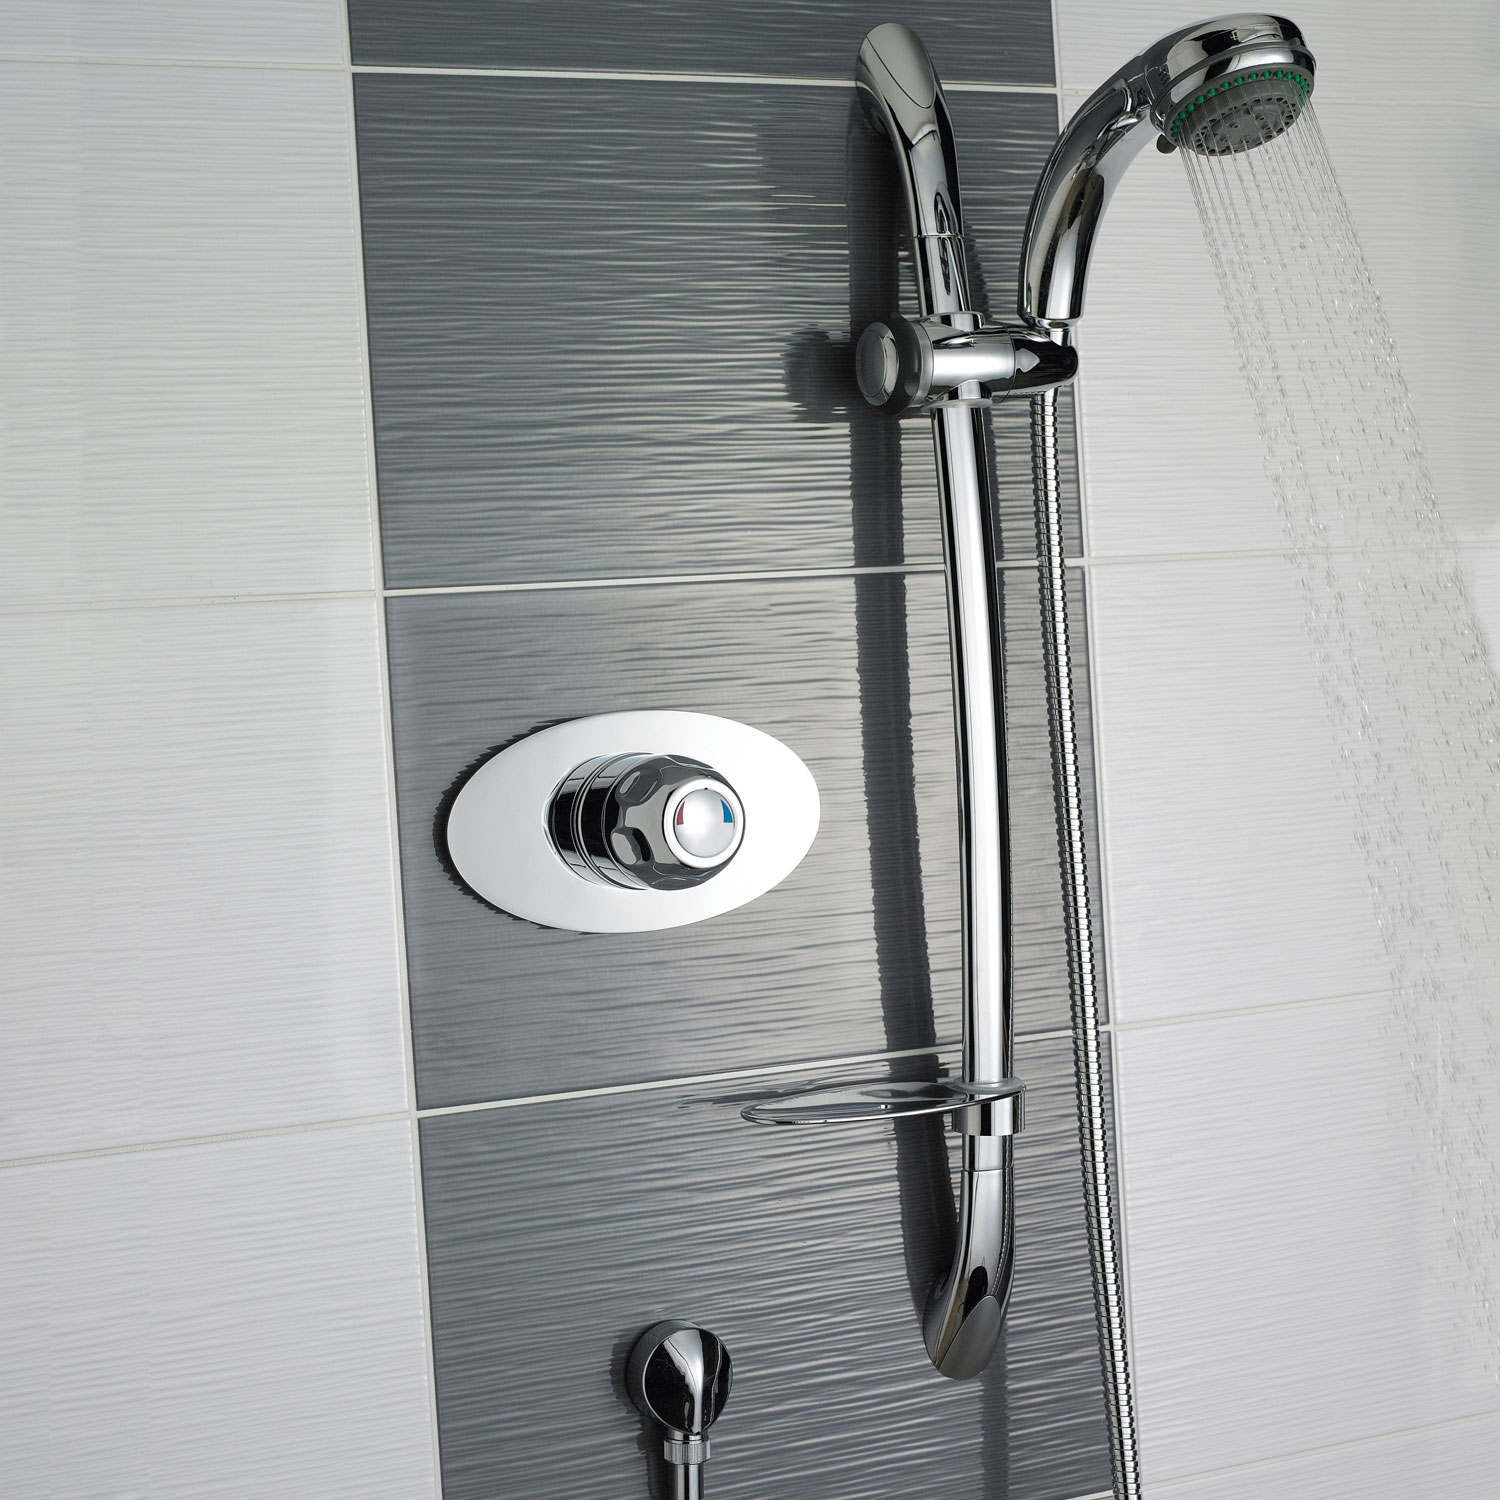 Premier Concealed Sequential Shower Mixer with Slider Rail Kit - Chrome